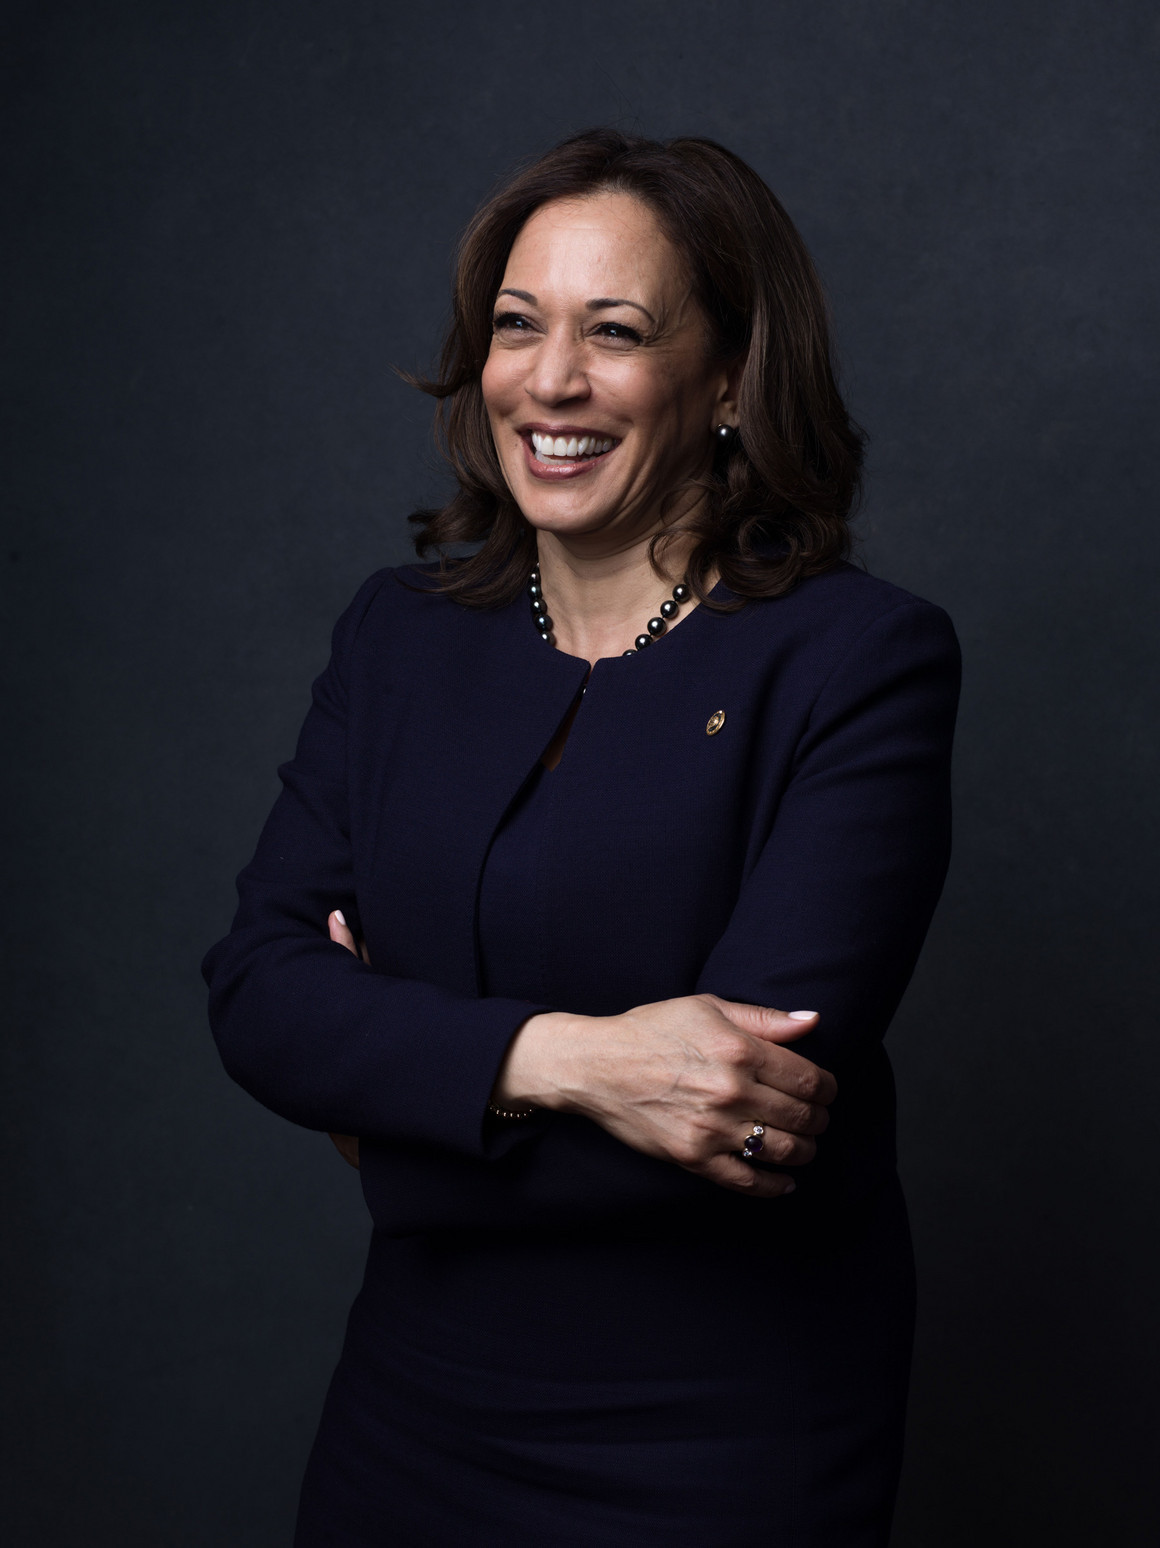 Kamala Harris reacts after making history as the first woman and black person to be named vice president-elect; calls Joe biden to congratulate him (videos)